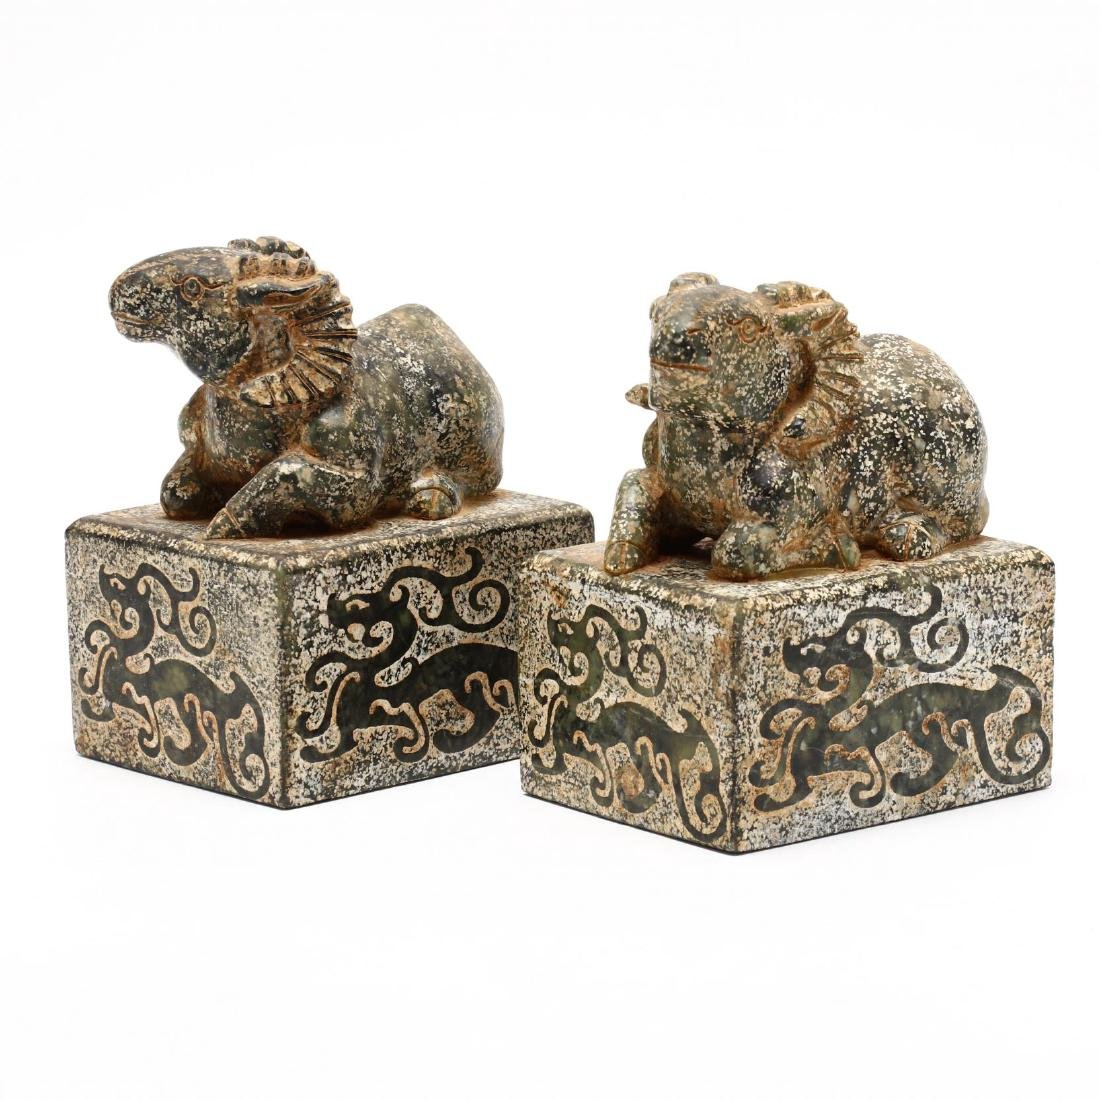 A Pair of Chinese Ram Stone Seals - 3